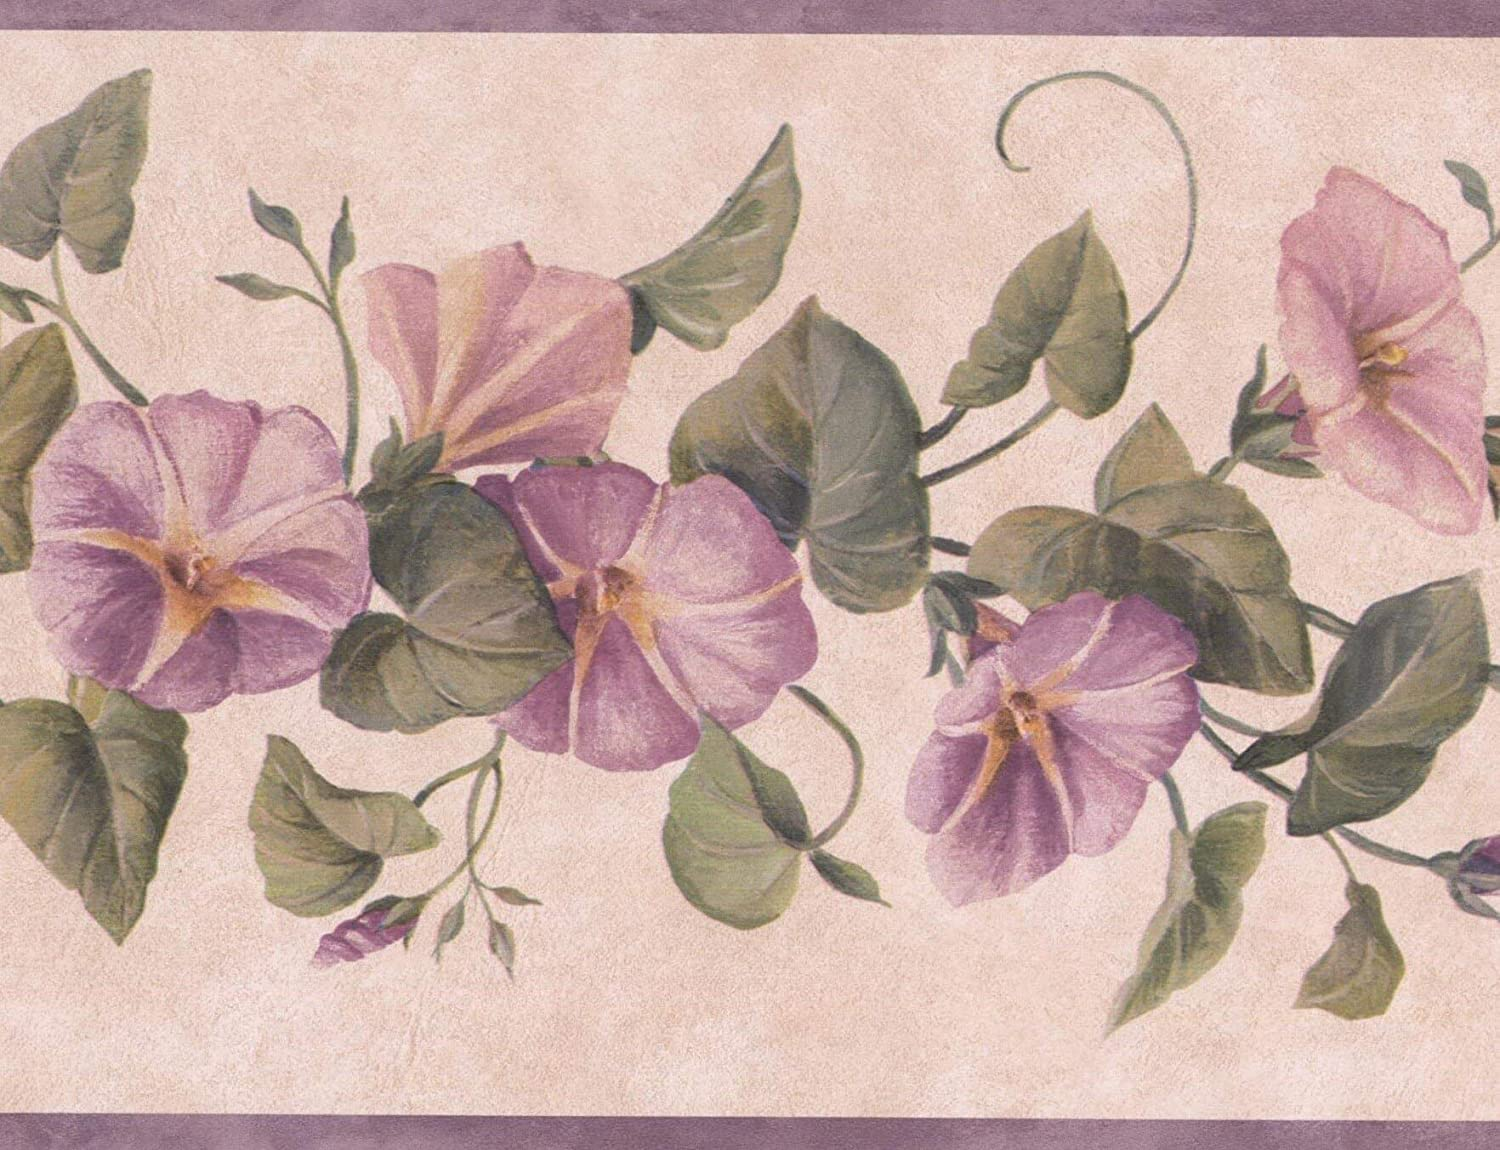 Purple Flowers On Vine Floral Wallpaper Border Retro Design Roll